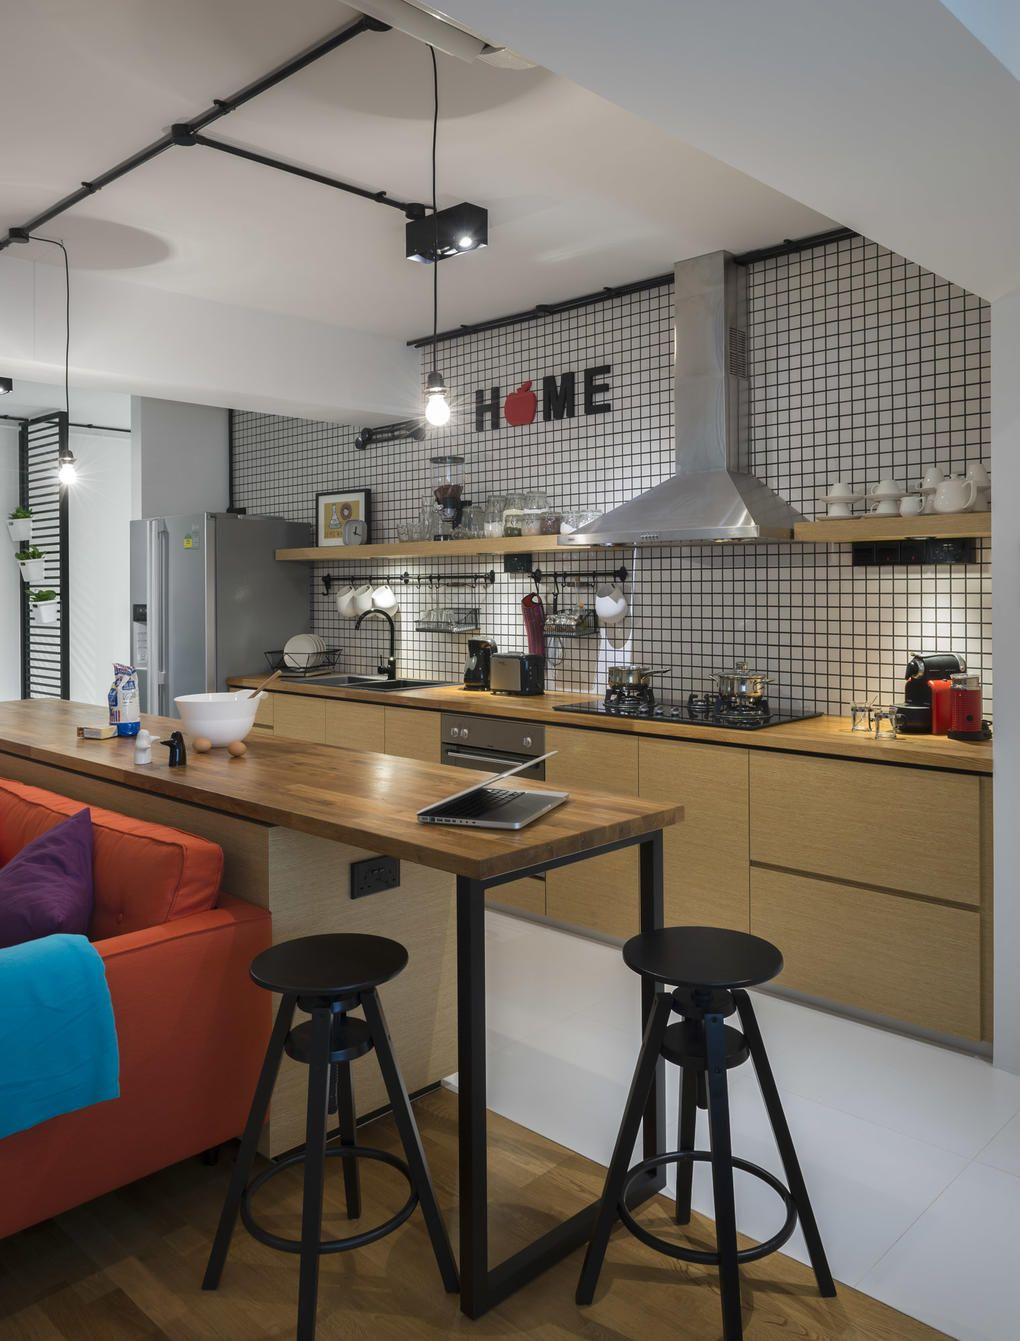 Singapore Hdb Living Room Design: There Are No Walls Between The Kitchen, Living And Dining